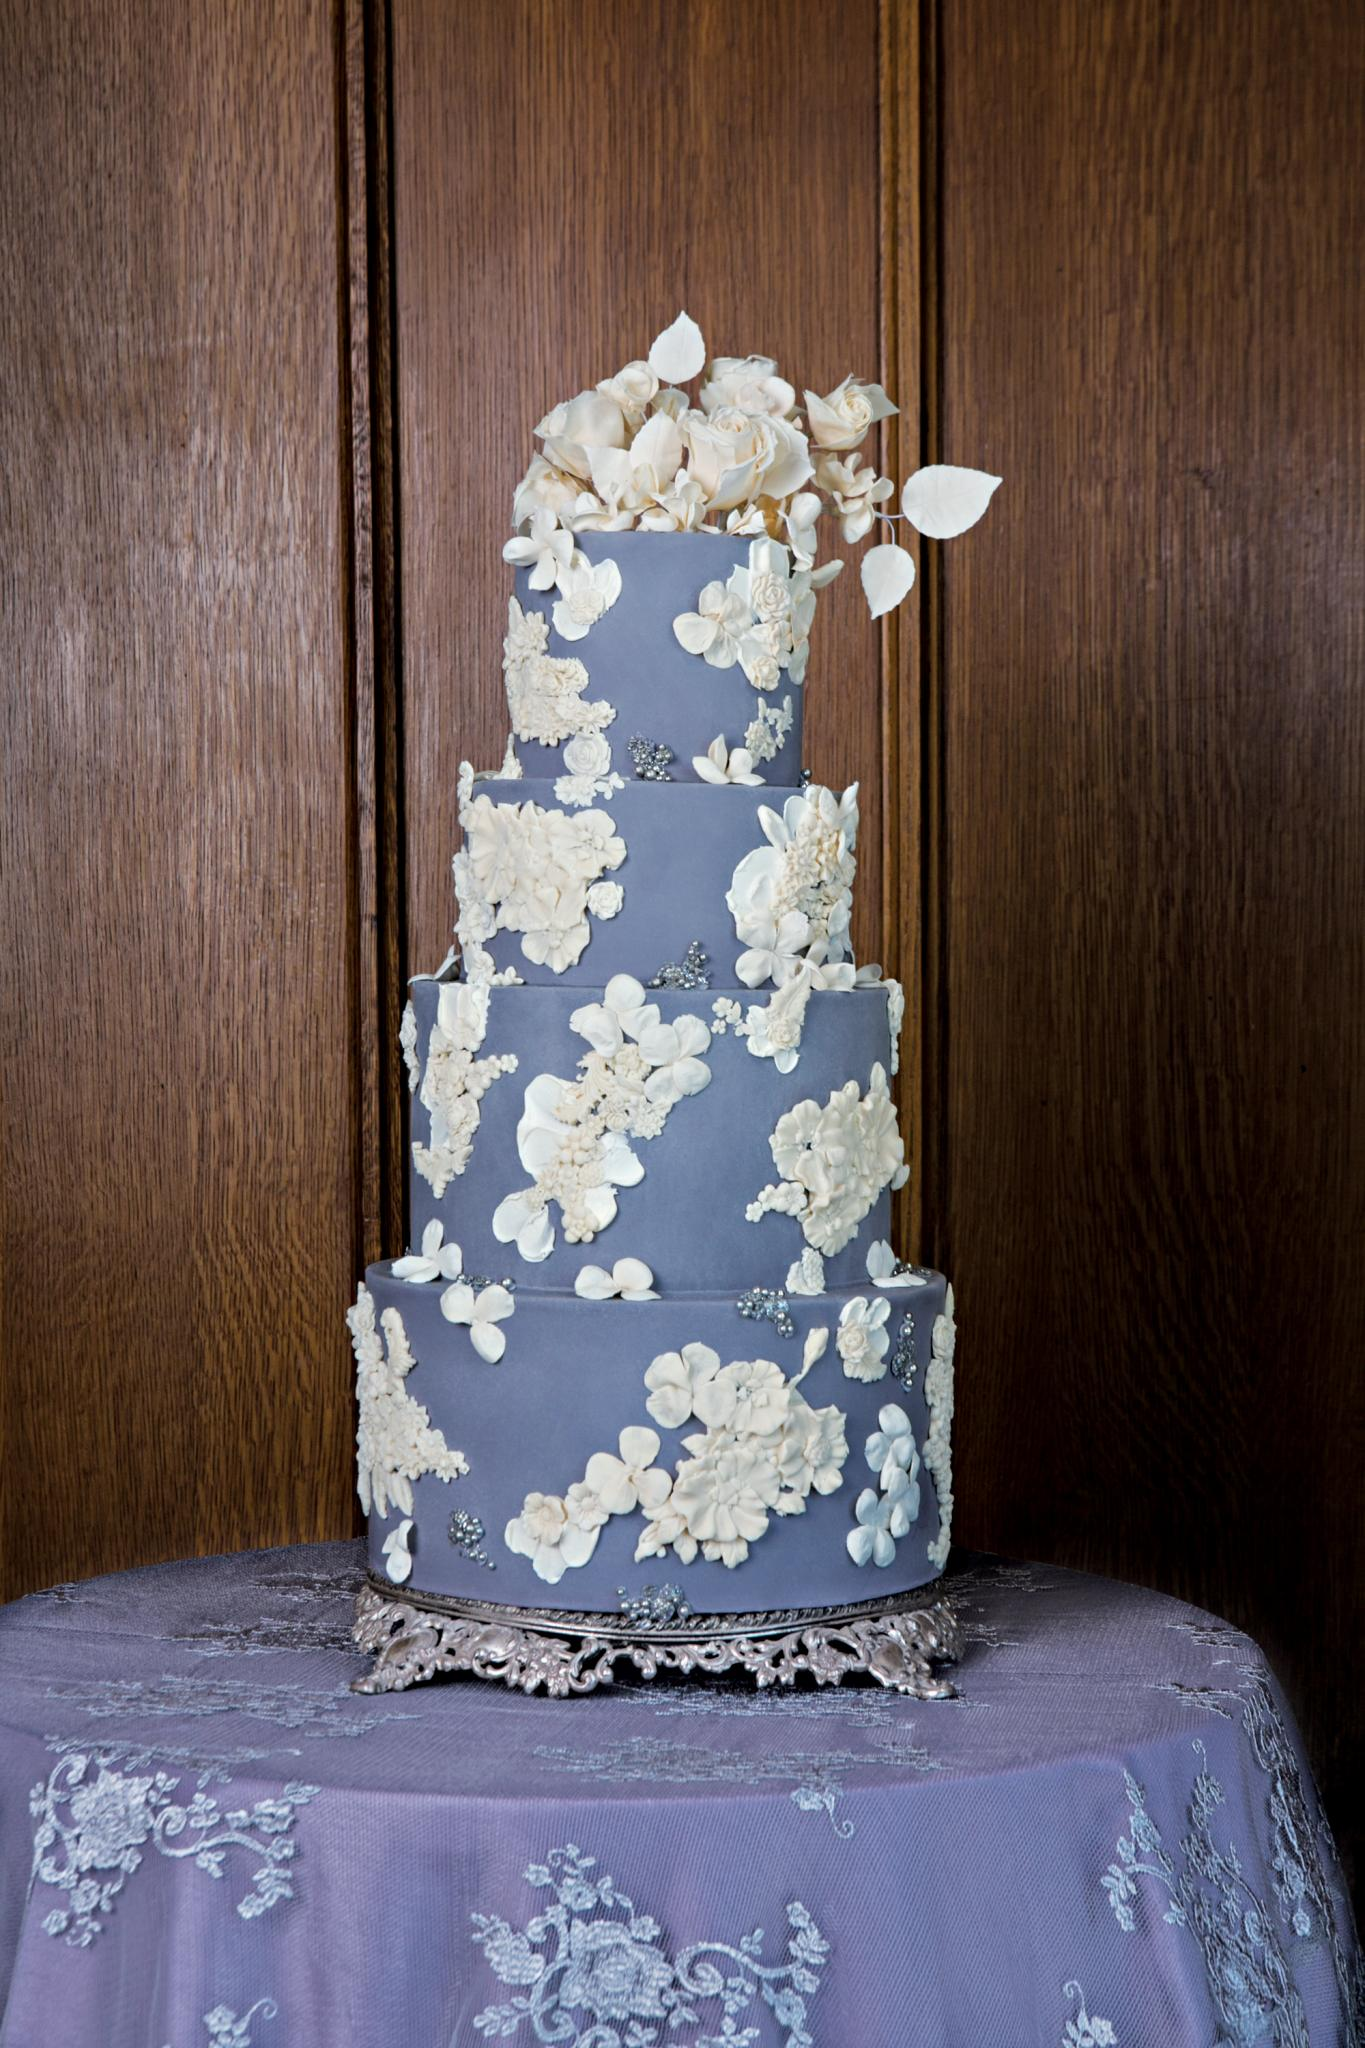 wedding cake | chiago wedding cake | chicago wedding design | amy beck cake design | wedding decor | cake design | wedding dessert | wedding inspiration